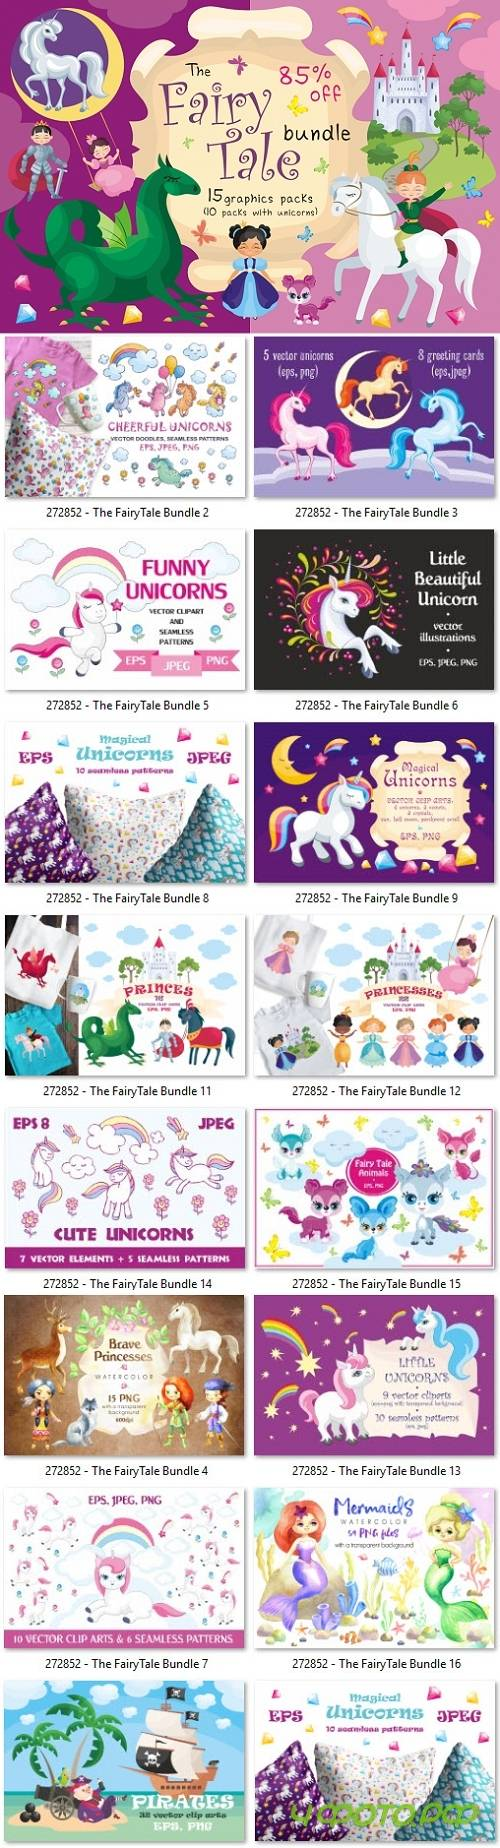 The FairyTale Bundle - 272852